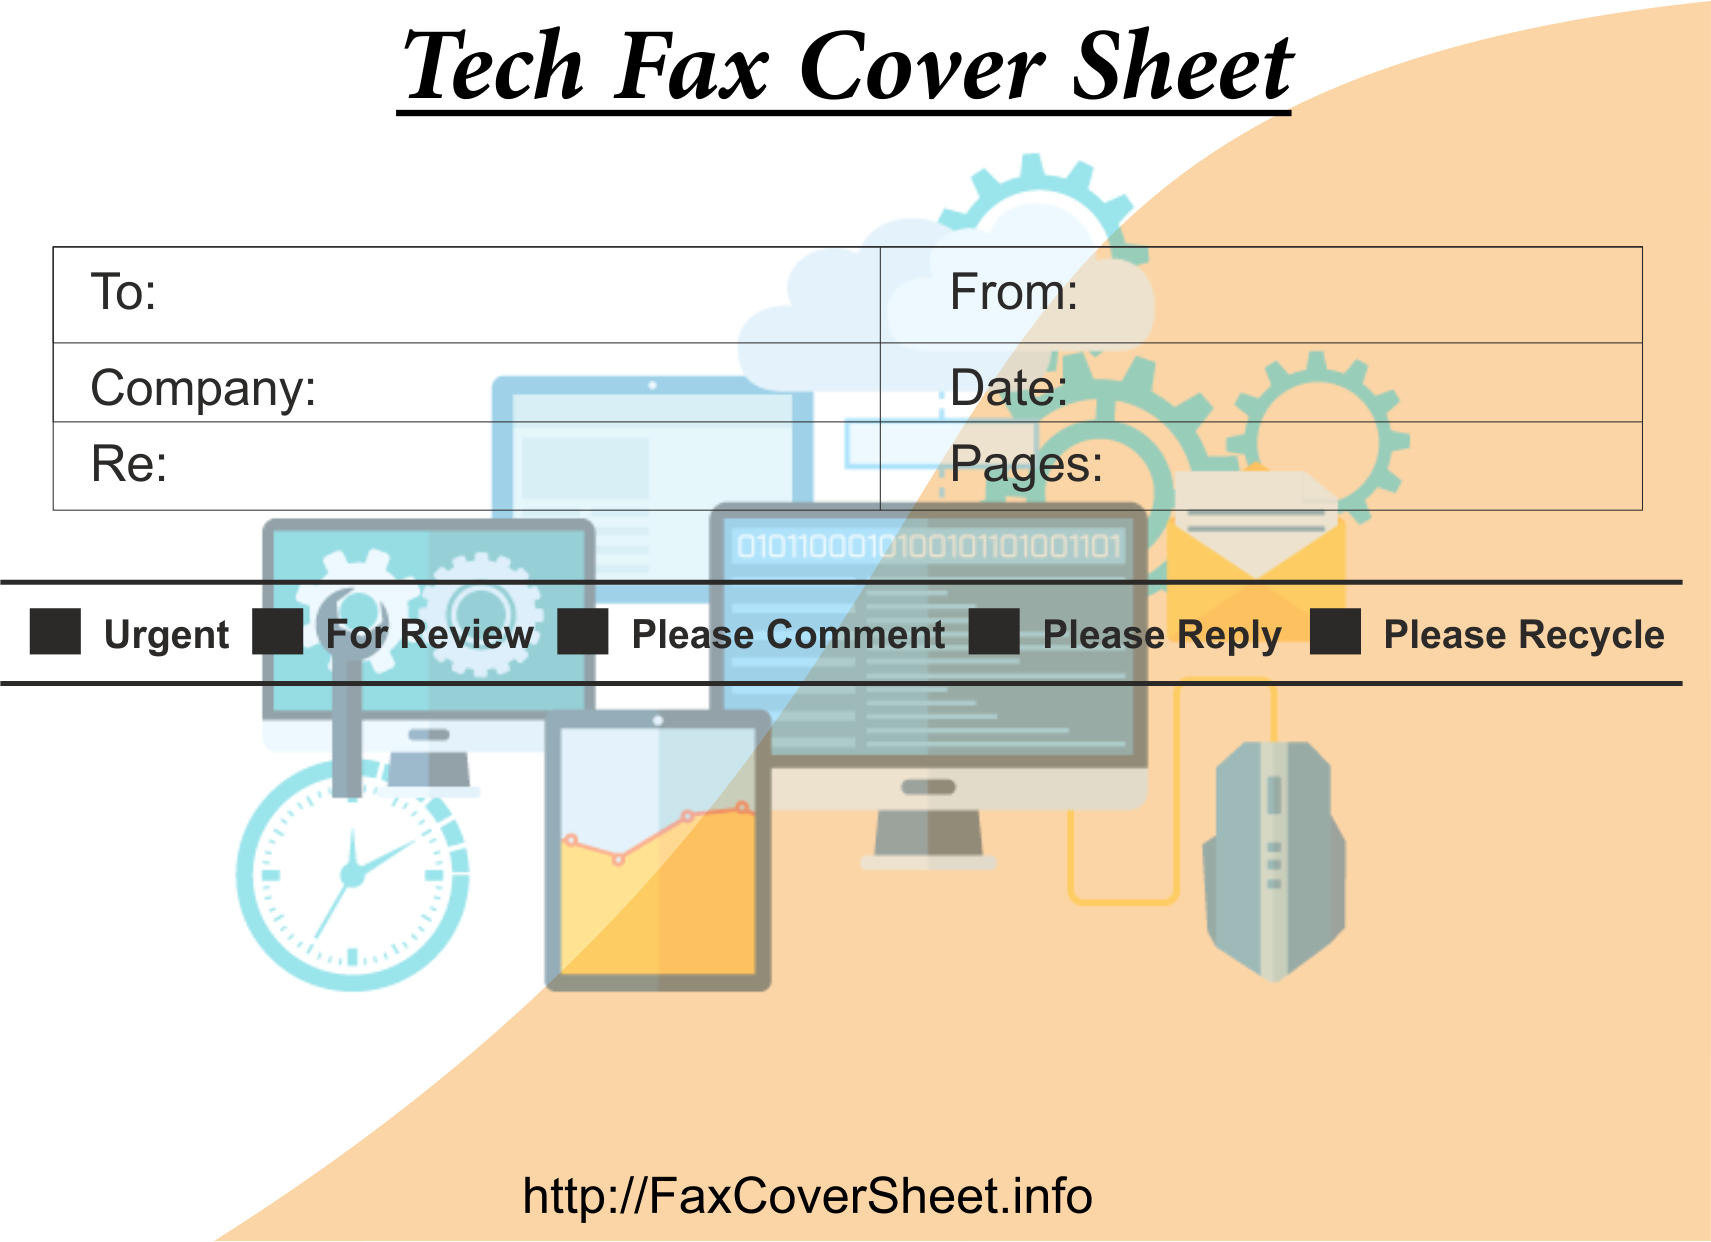 Fax Cover Sheet with Tech Design Templates, free Fax Cover Sheet with Tech Design